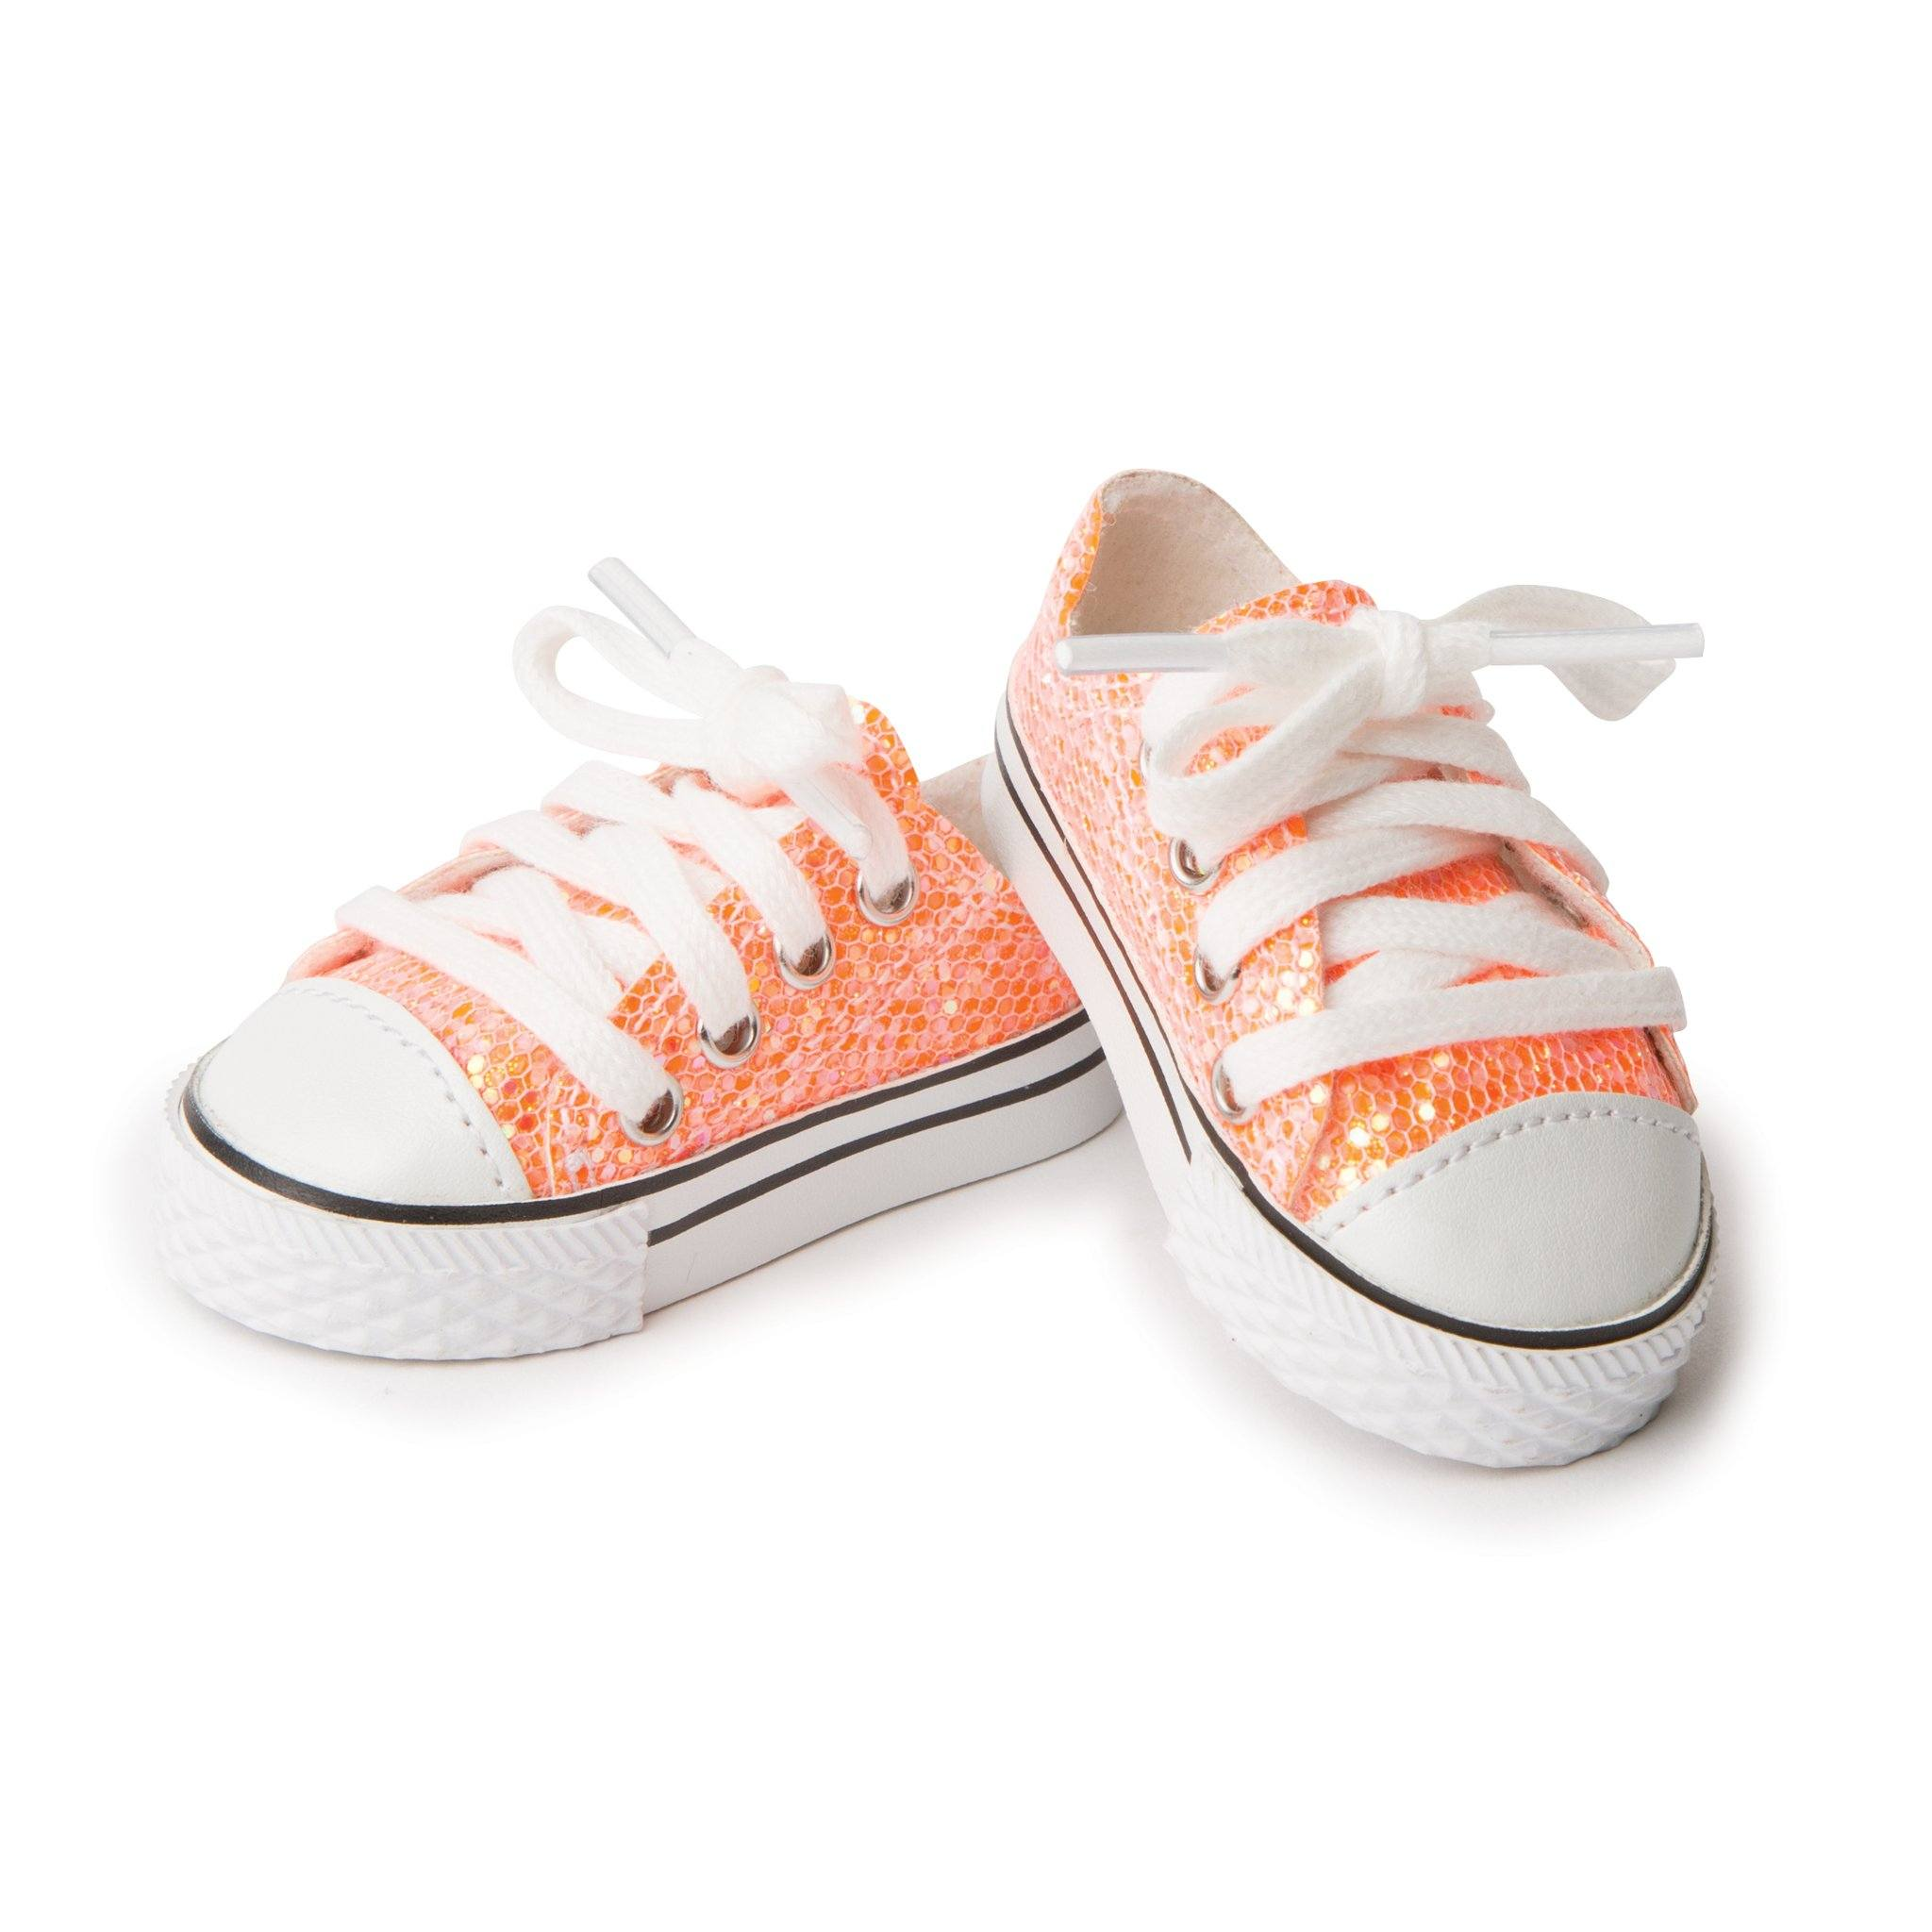 Peachy keen sparkly peach lace-up sneakers fit all 18 inch dolls.